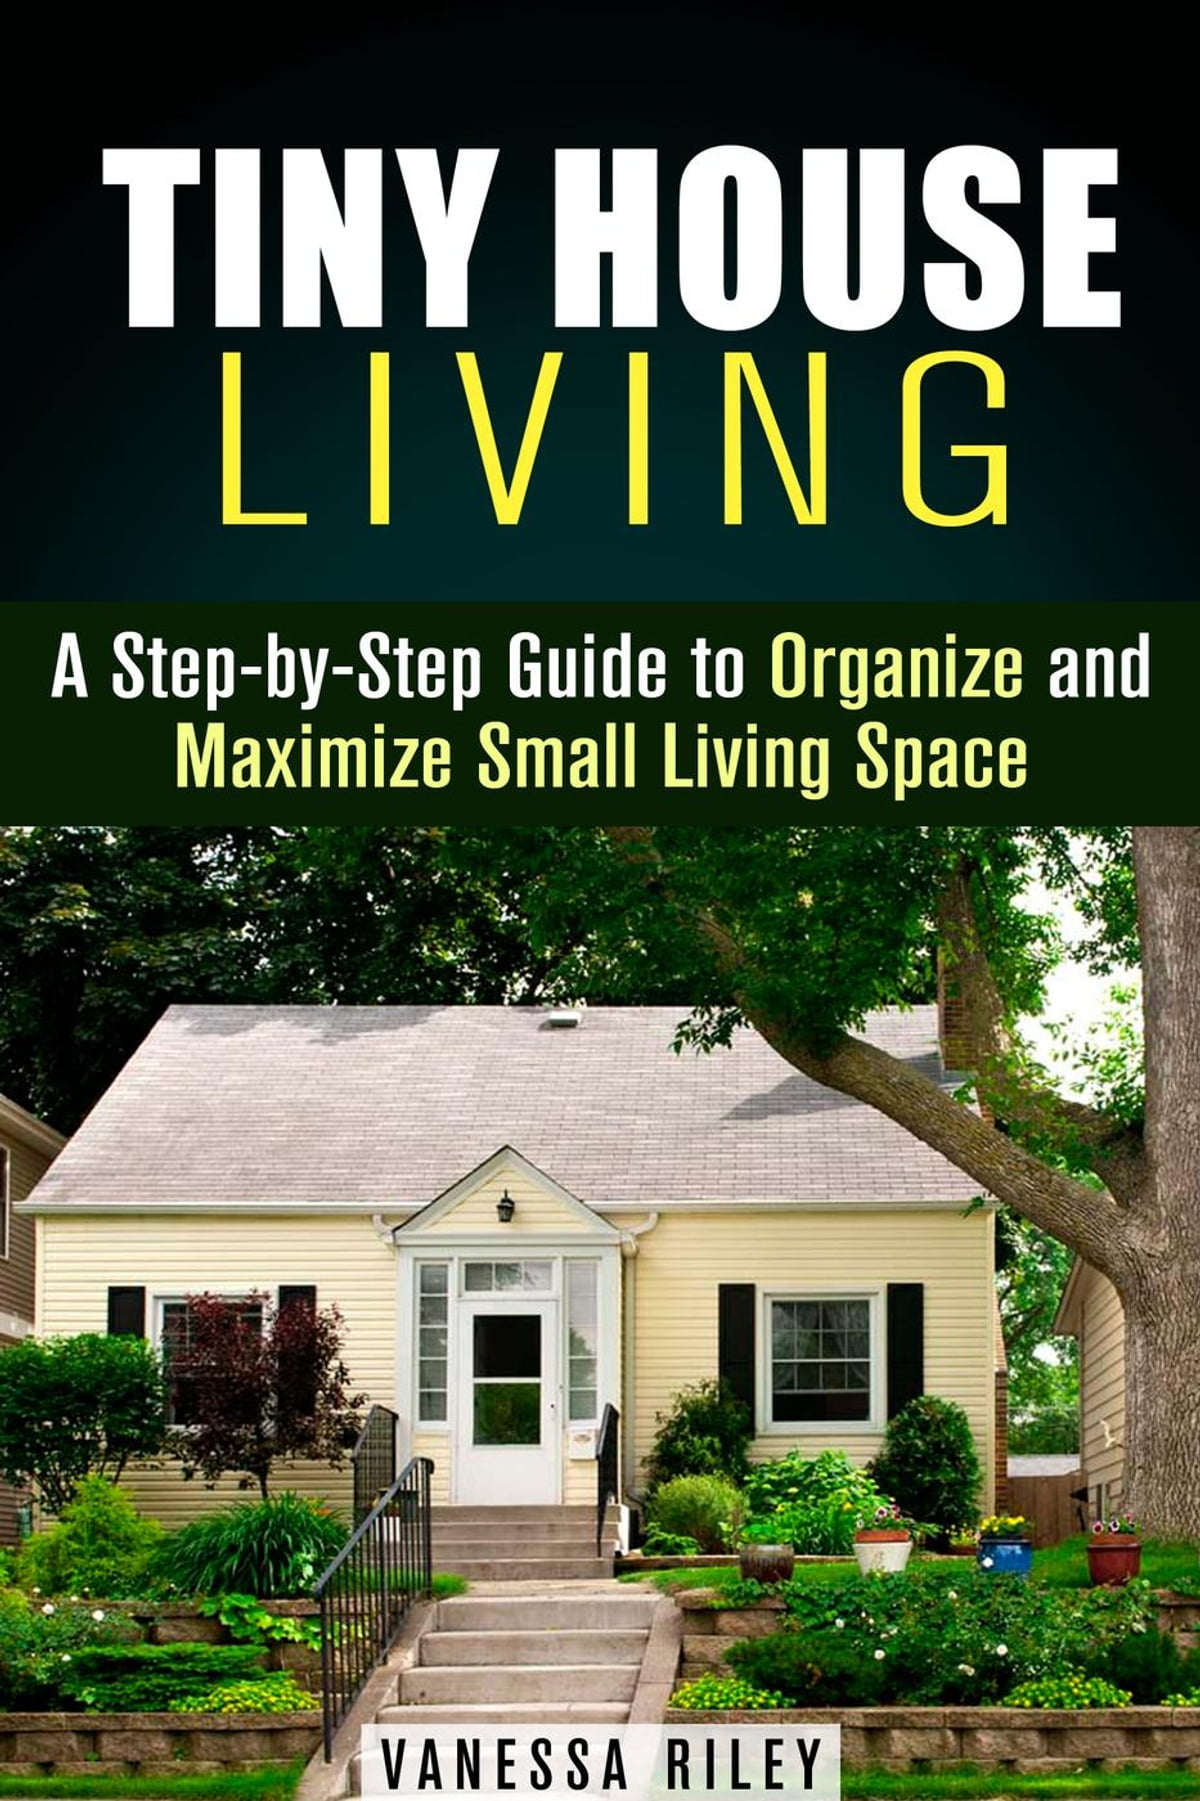 Tiny House Living : A Step By Step Guide To Organize And Maximize Small  Living Space EBook By Vanessa Riley   9781386941460 | Rakuten Kobo